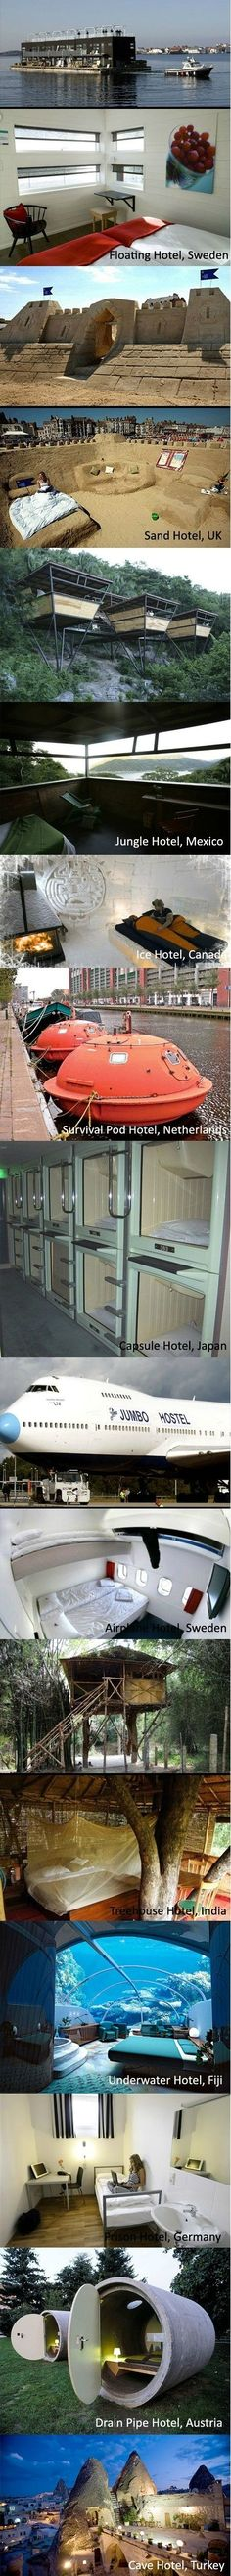 Worldly Hotels